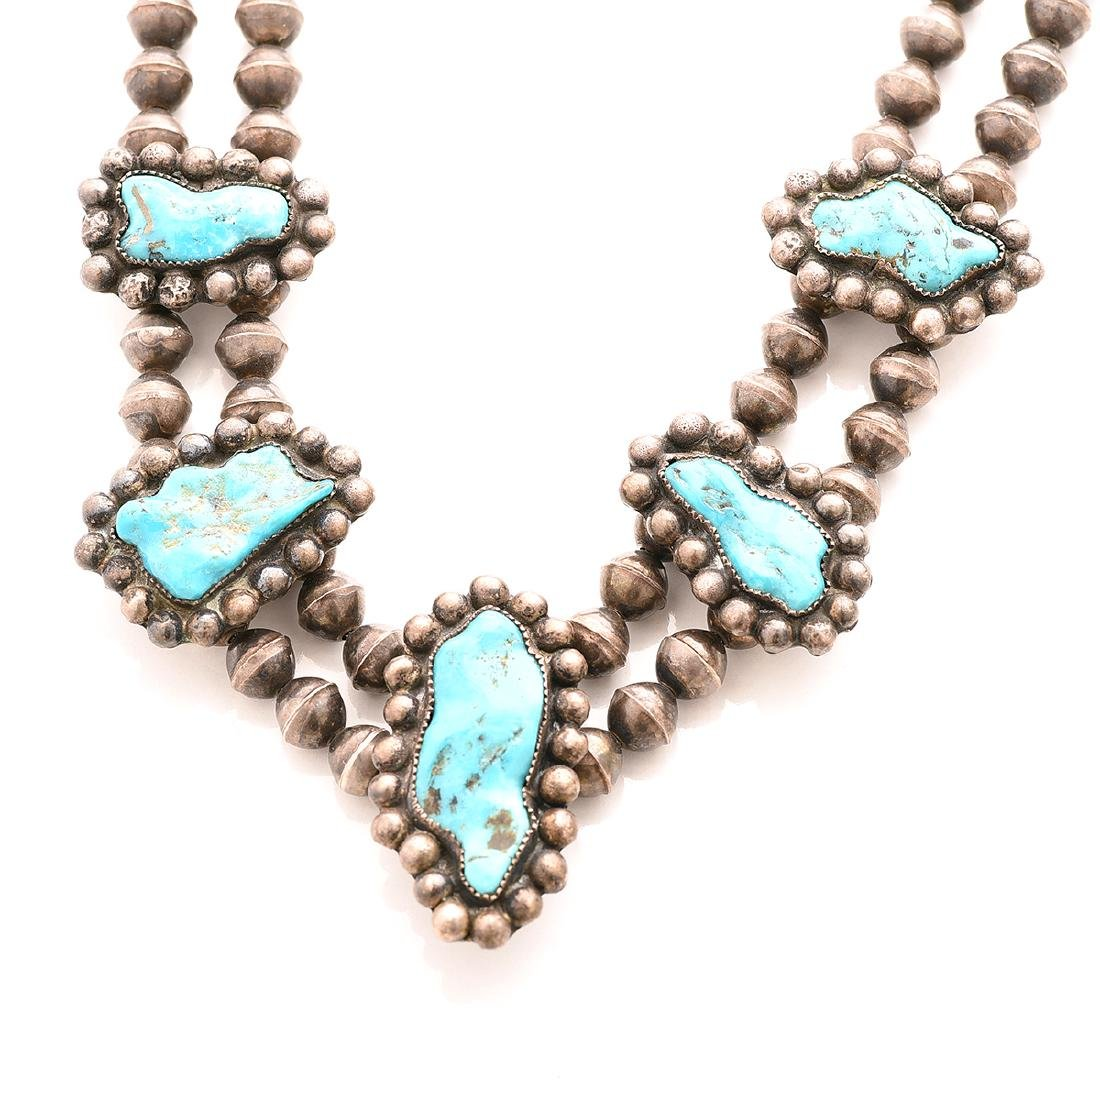 Native American Turquoise, Silver Necklace and Ring. - 2